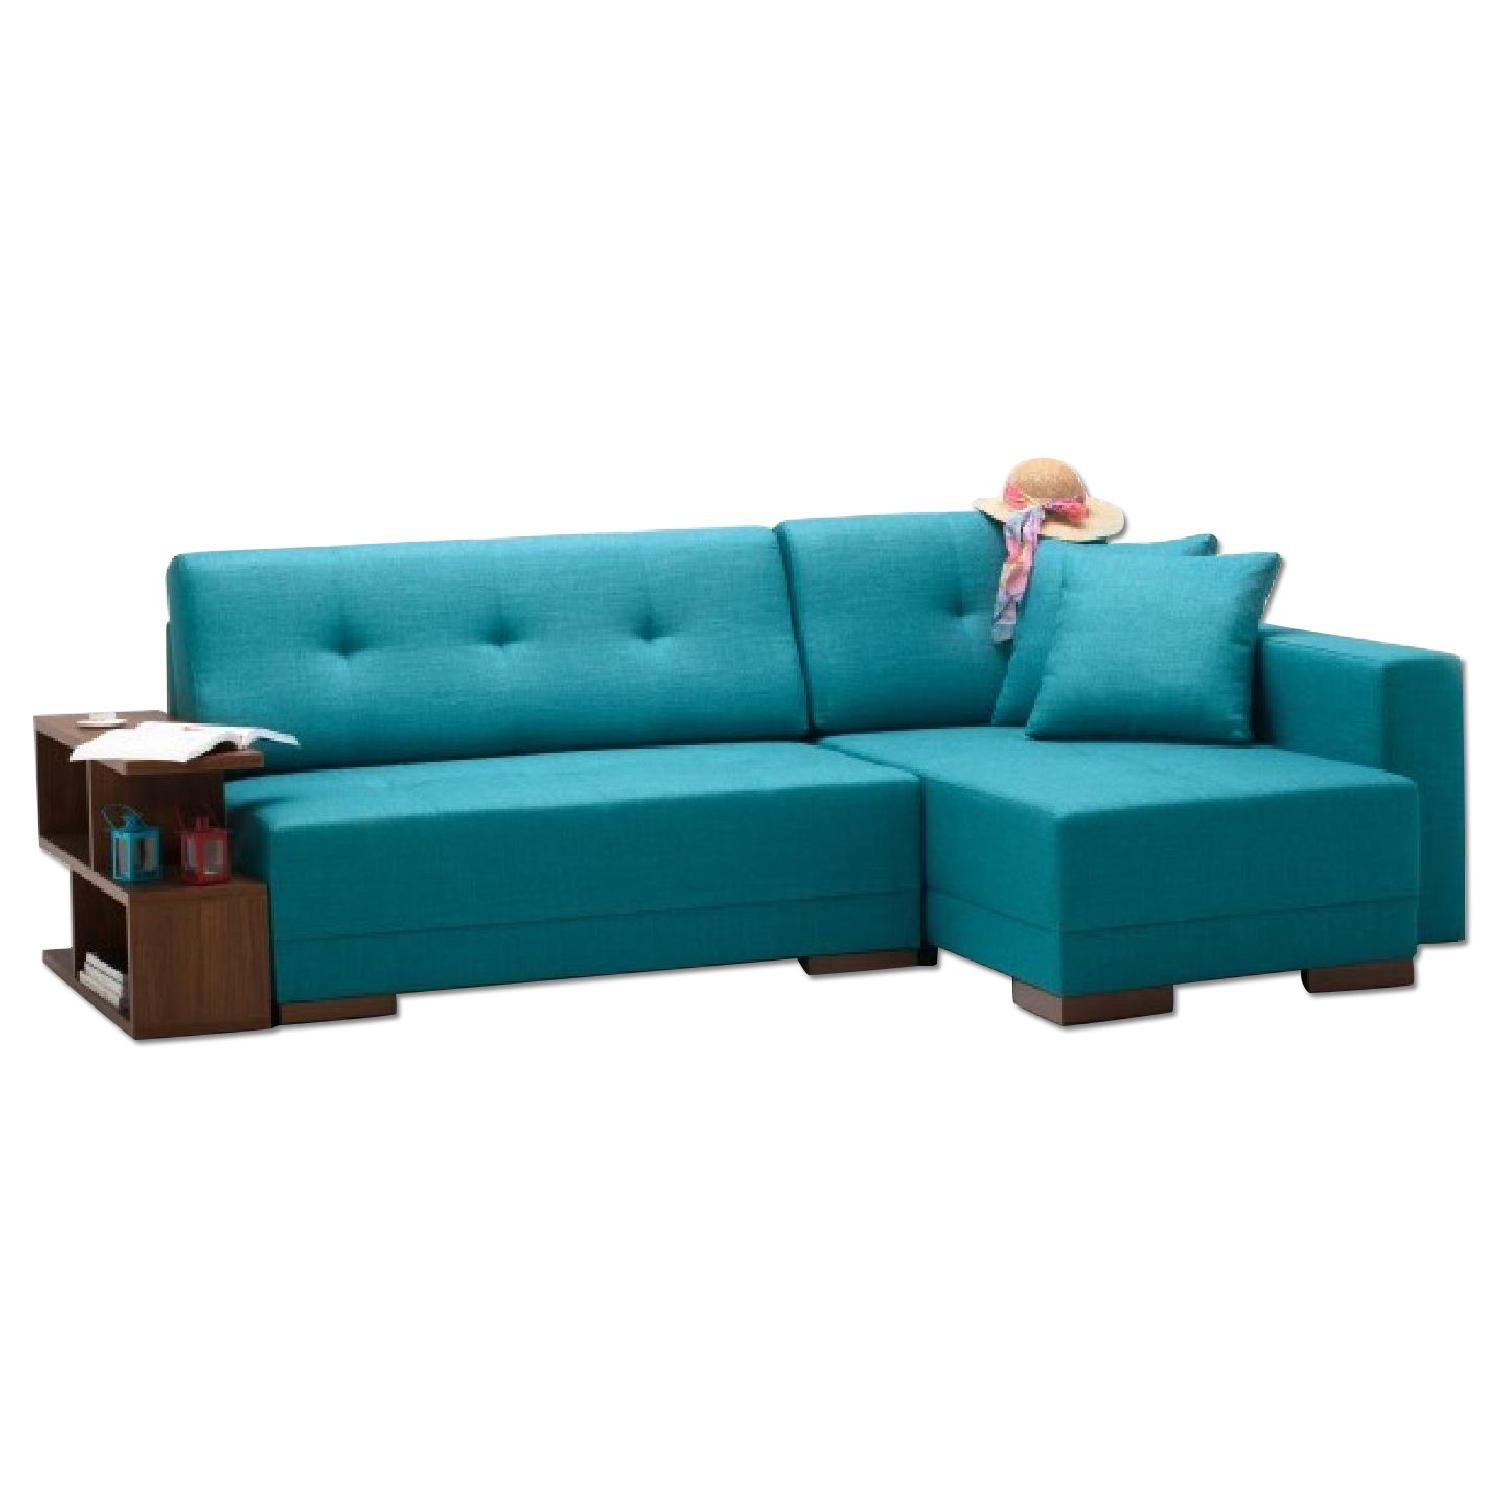 The Smart Sofa Right Side Corner Convertible Sofa in Turquoise - image-0